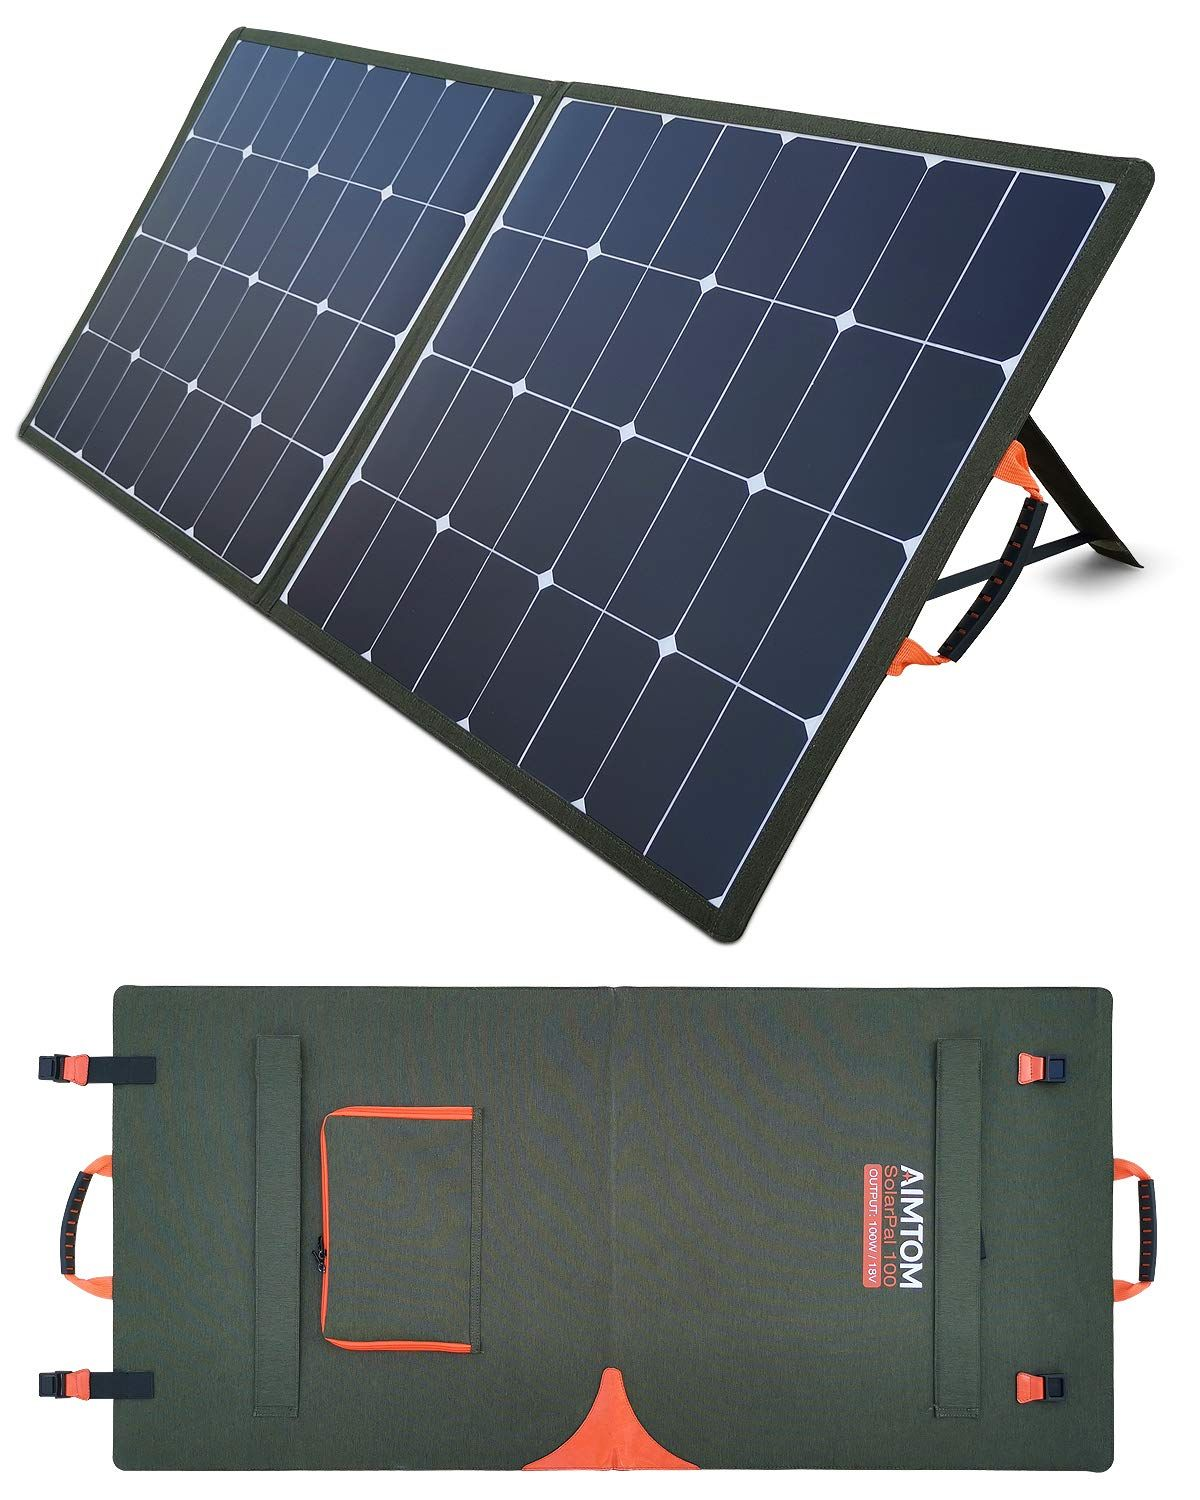 Aimtom Solarpal 100w Portable Solar Panel For Power Station Solar Generator Phone And Laptop Fold Trong 2020